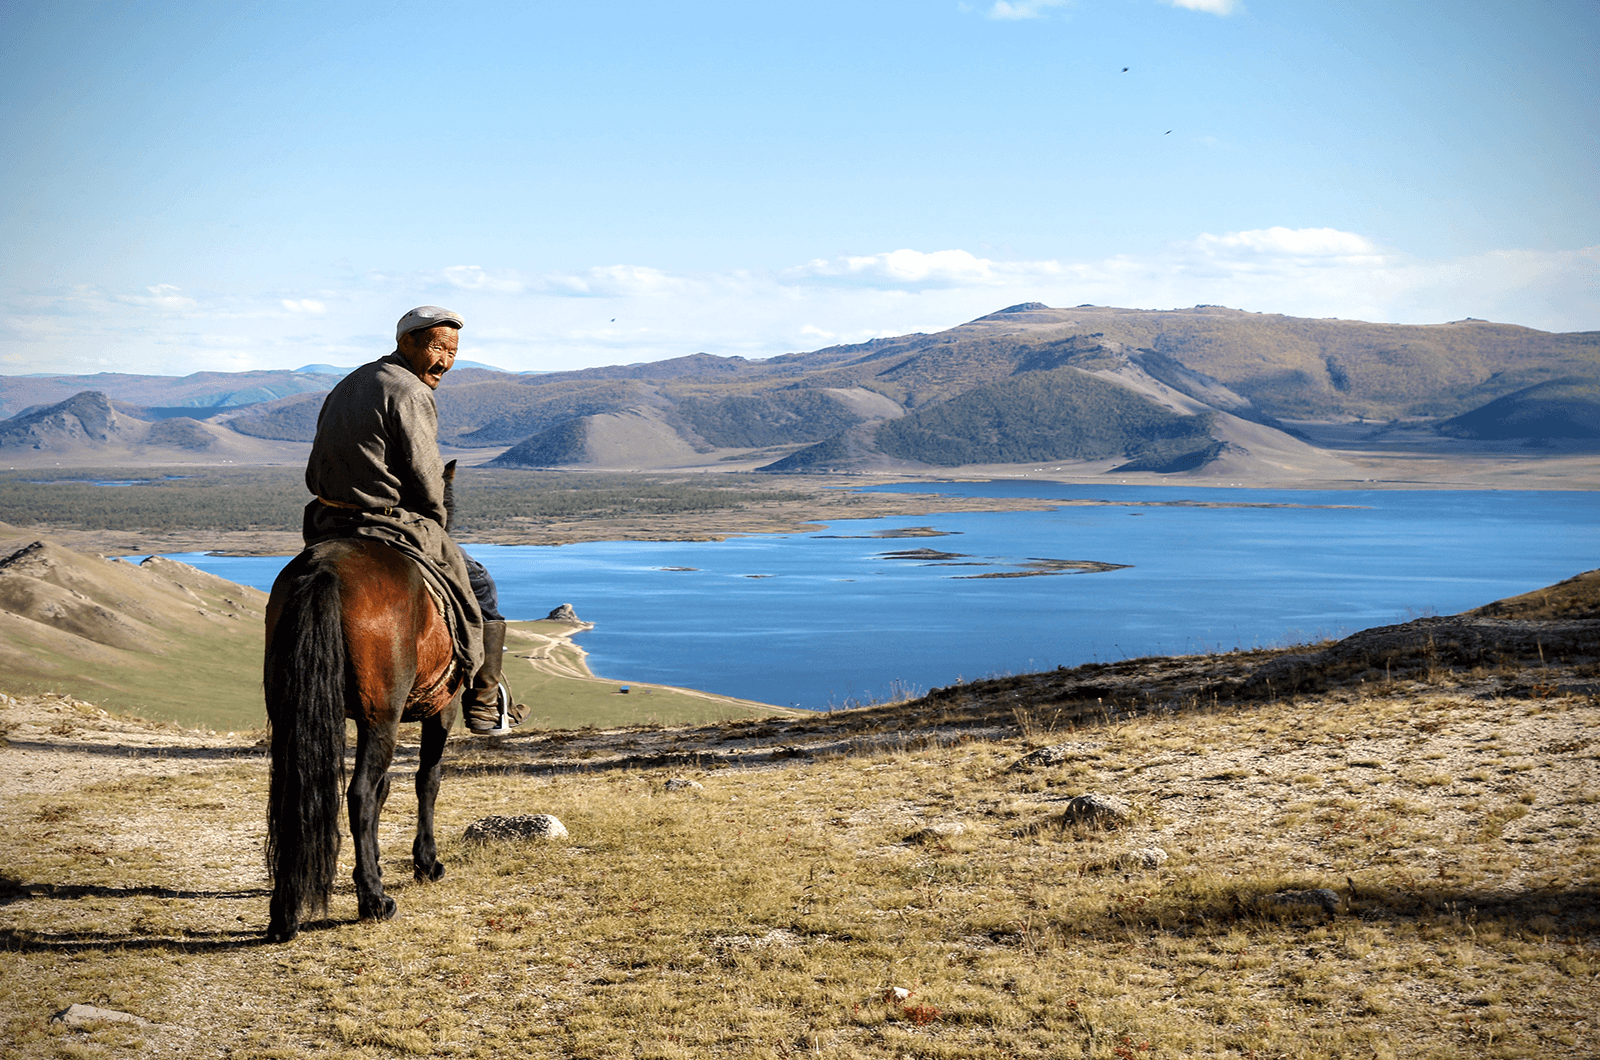 A local guide on a horse in Mongolia. Photo by Indy Guide.